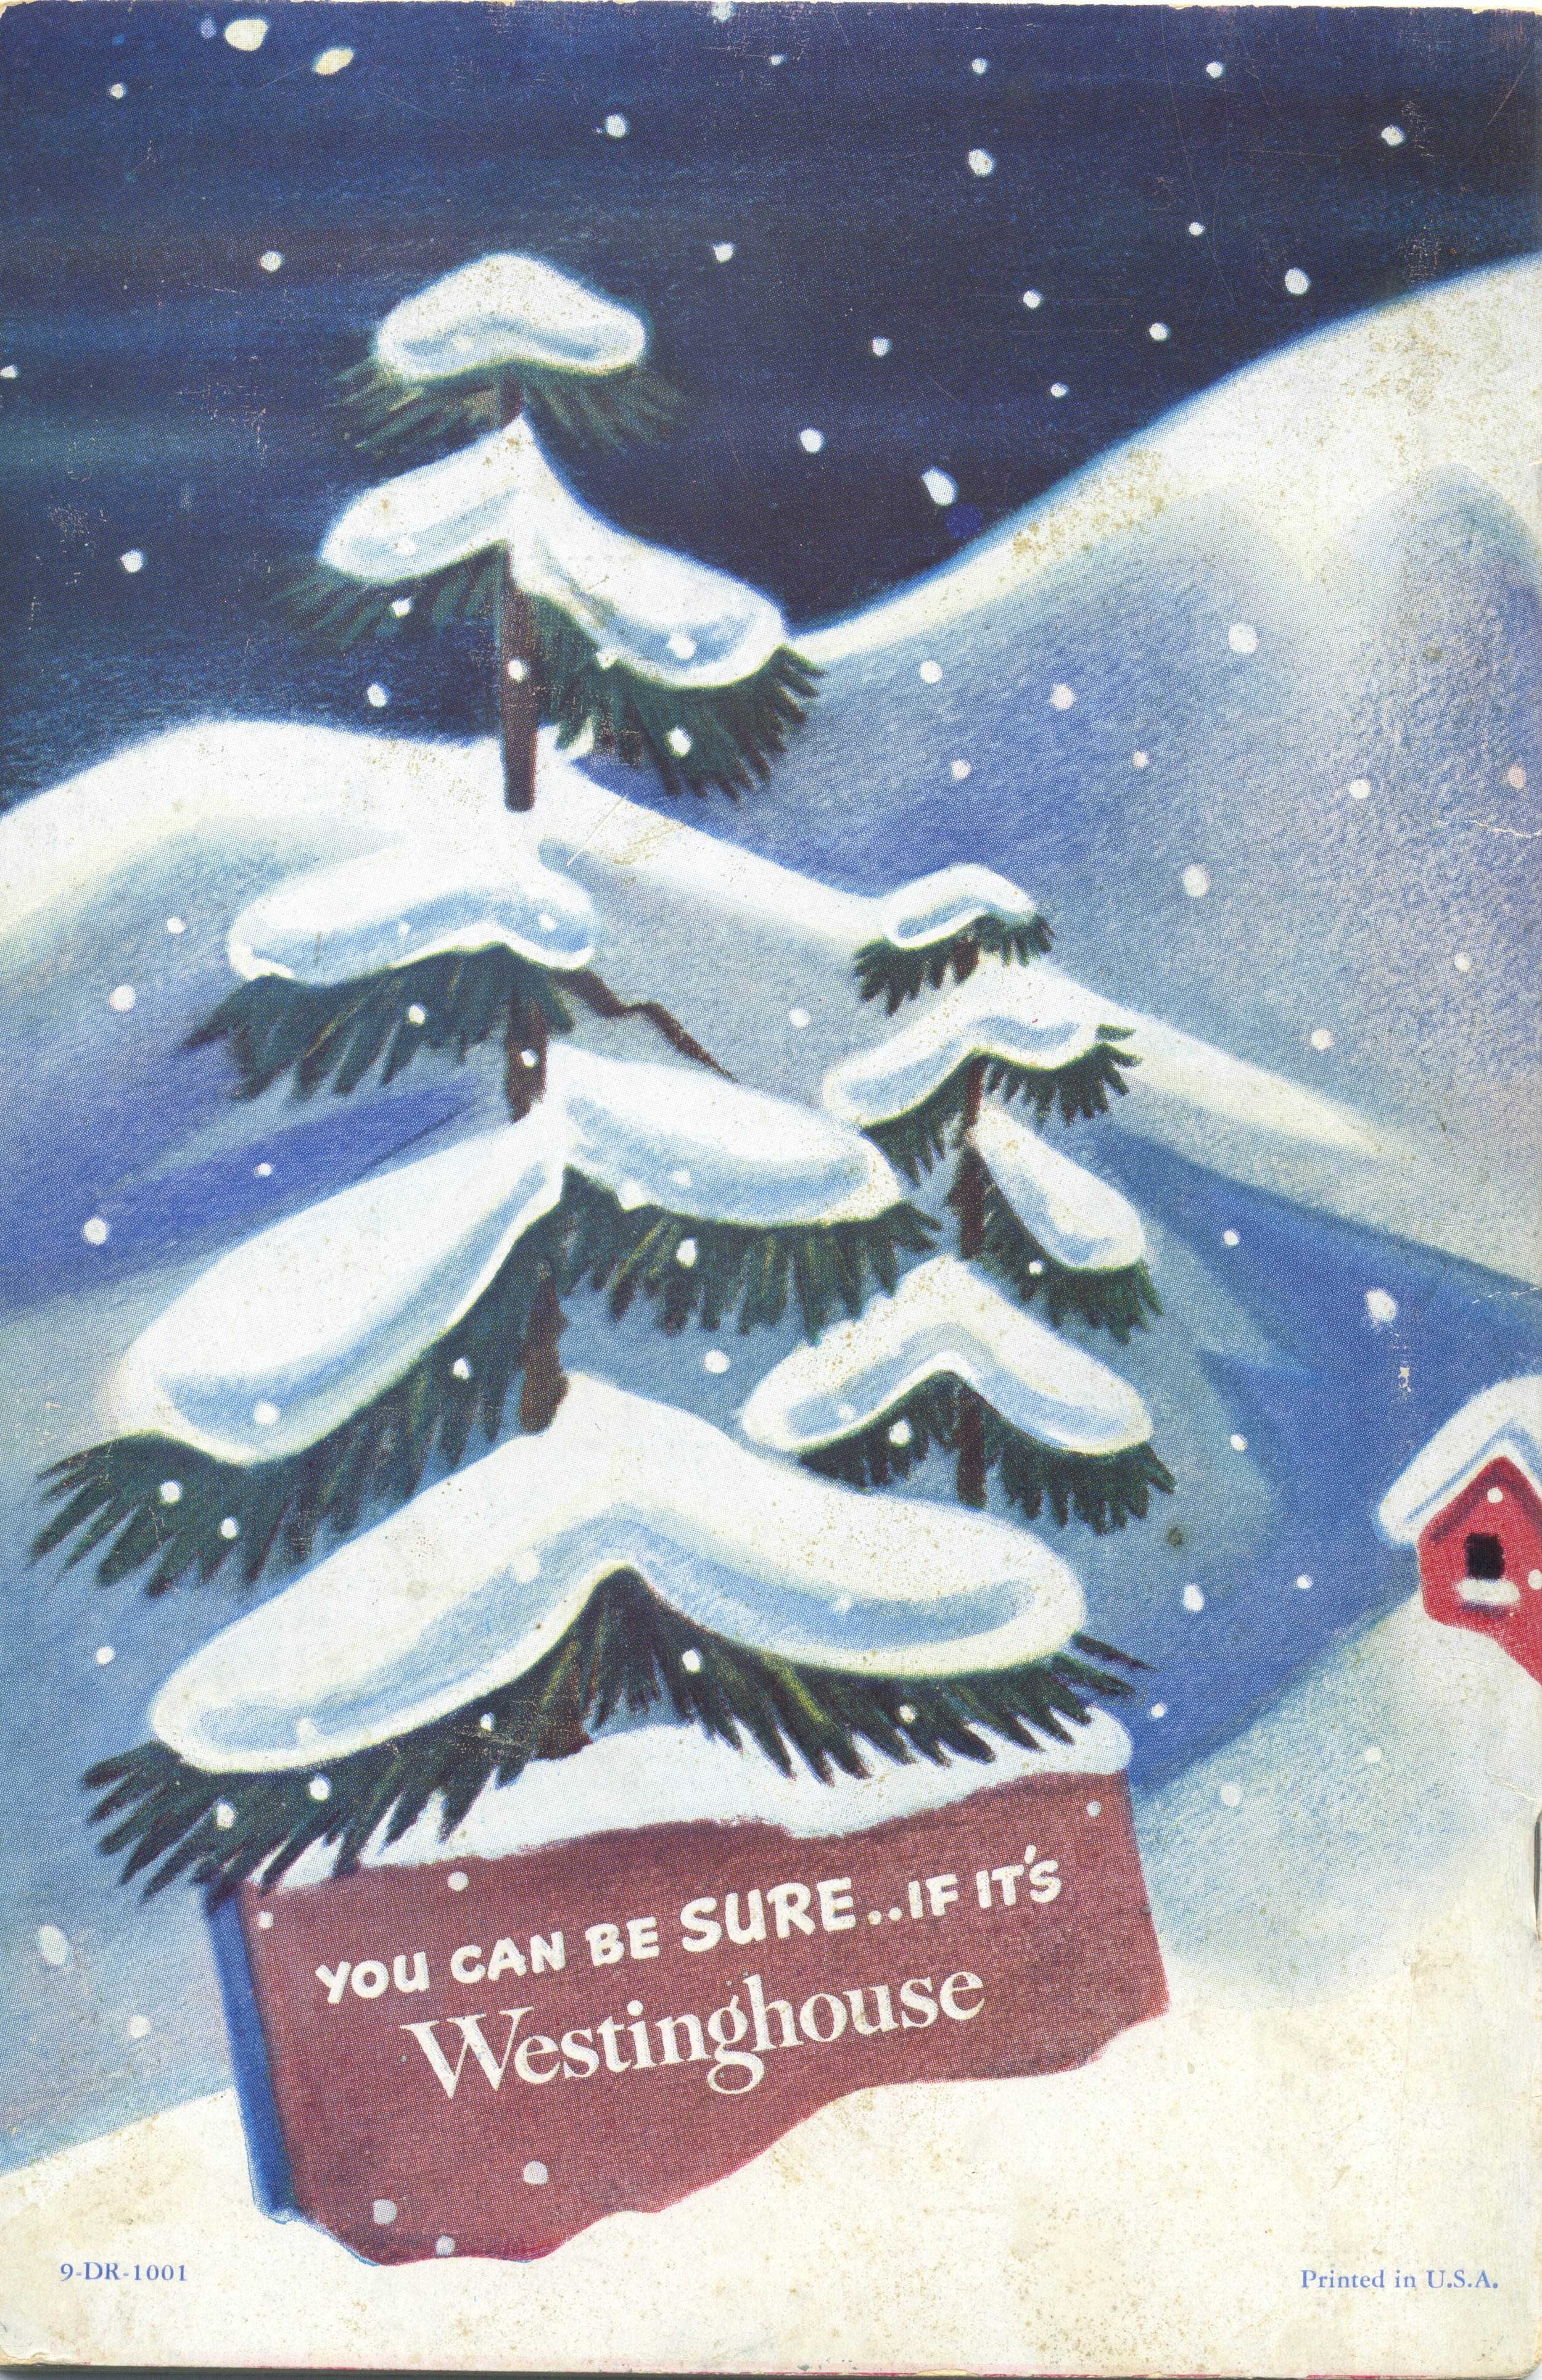 Reverse of the 1948 refrigerator booklet